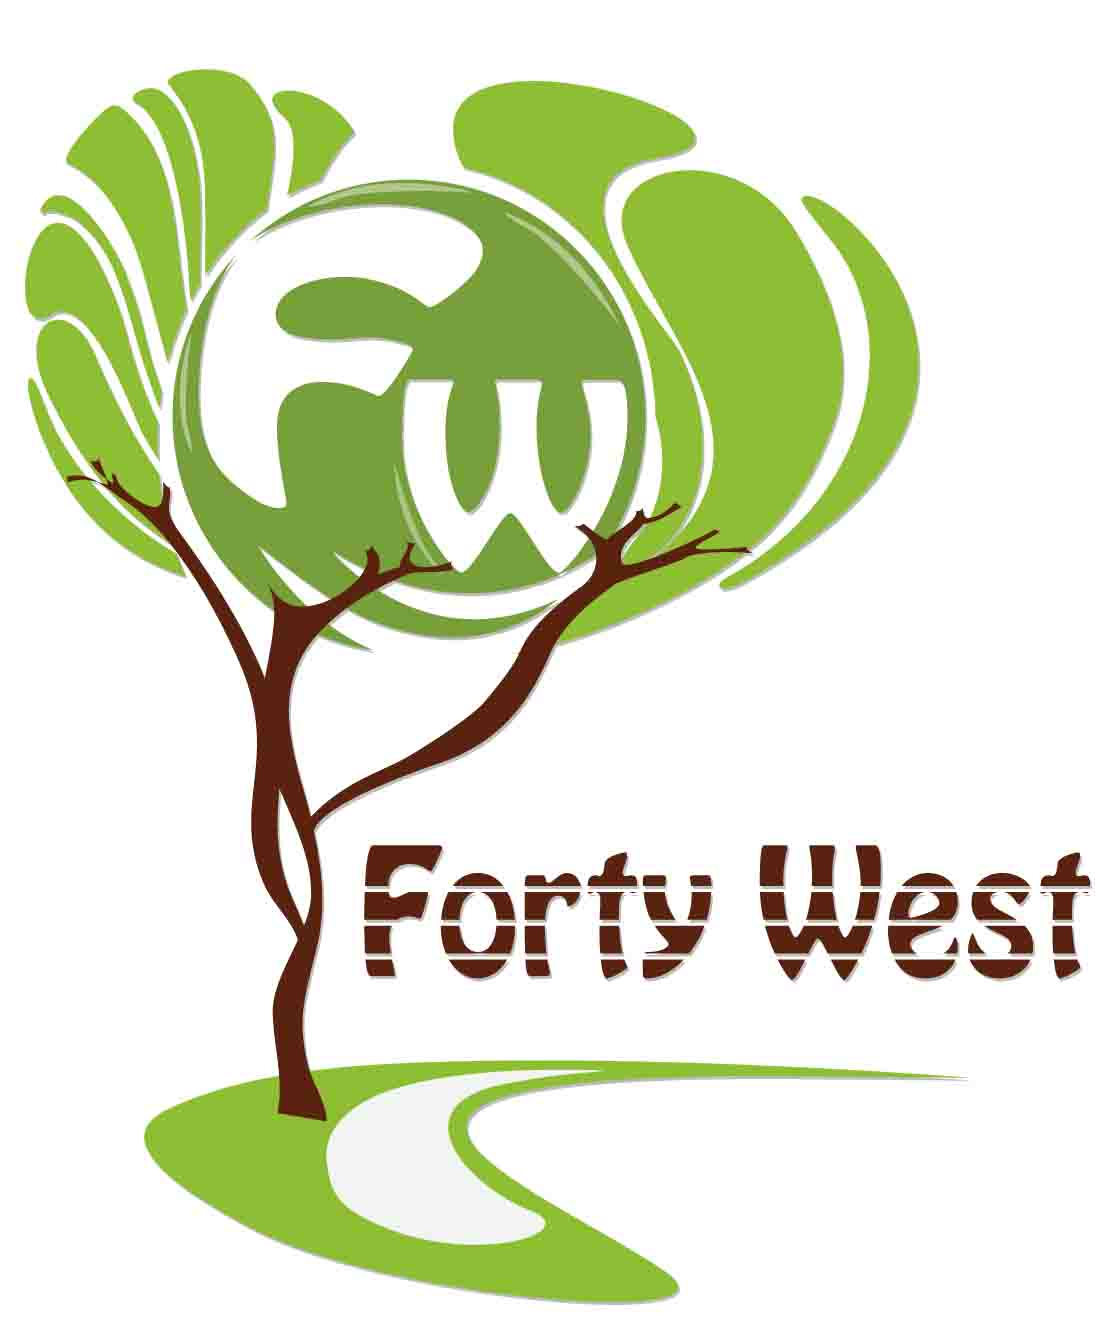 Logo Design by Aj Ong - Entry No. 67 in the Logo Design Contest Unique Logo Design Wanted for Forty West.